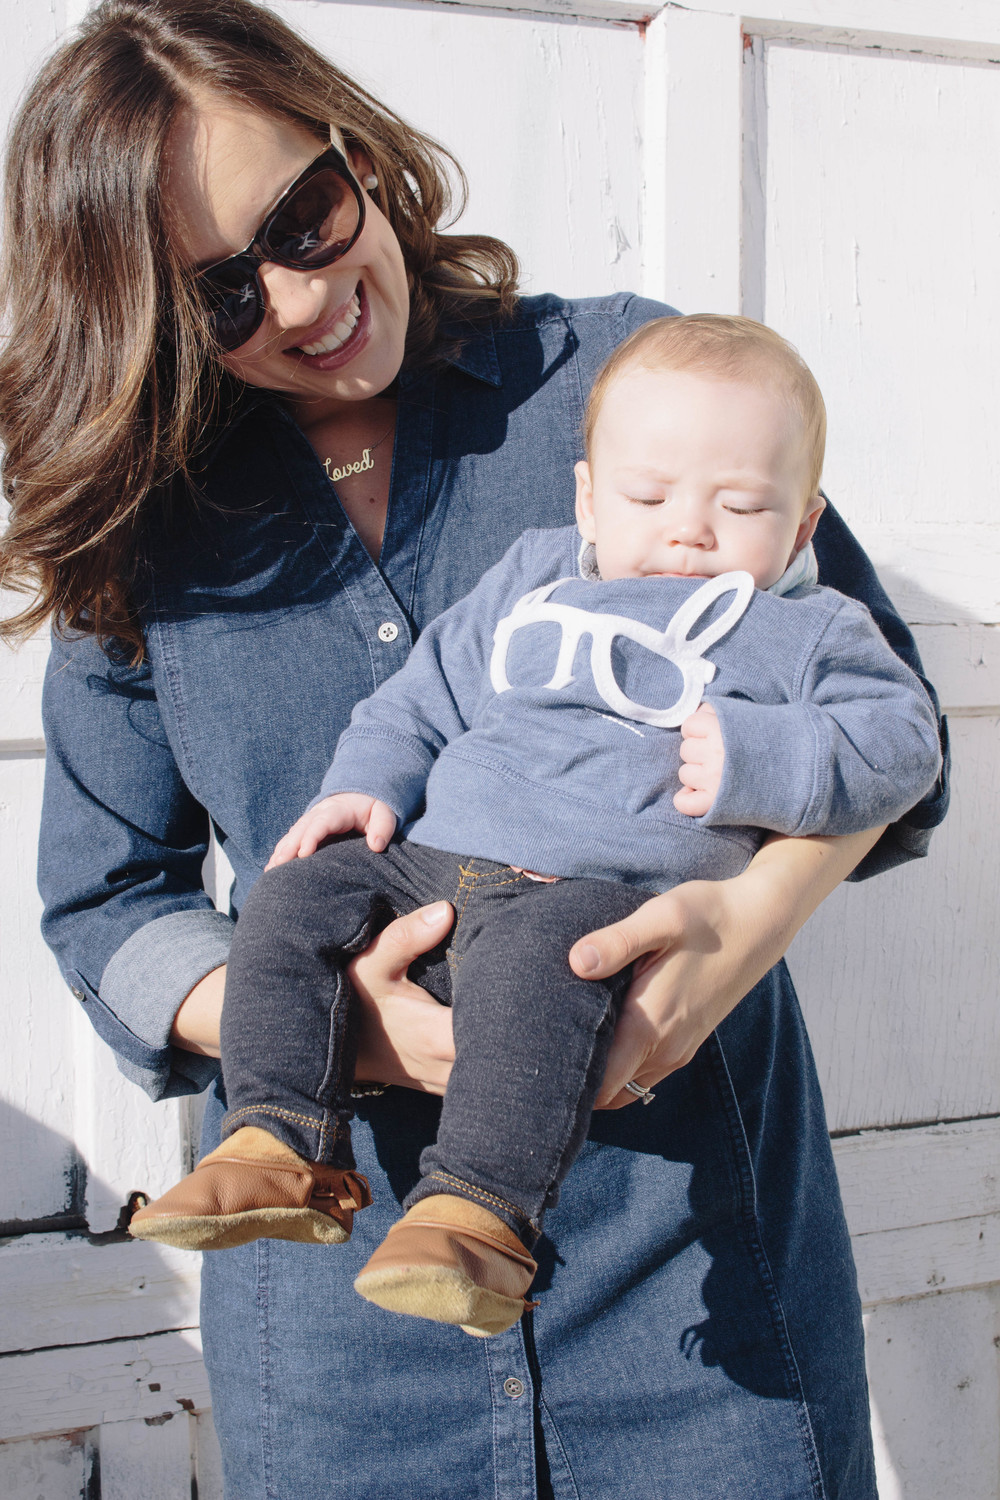 little dude outfit, denim dress with booties, chambray outfits, dressing your kids fashionably, classic wear for kids, preppy, sundays best, h&m fashion for kids and adults, jewelry with wording, pearl earrings,